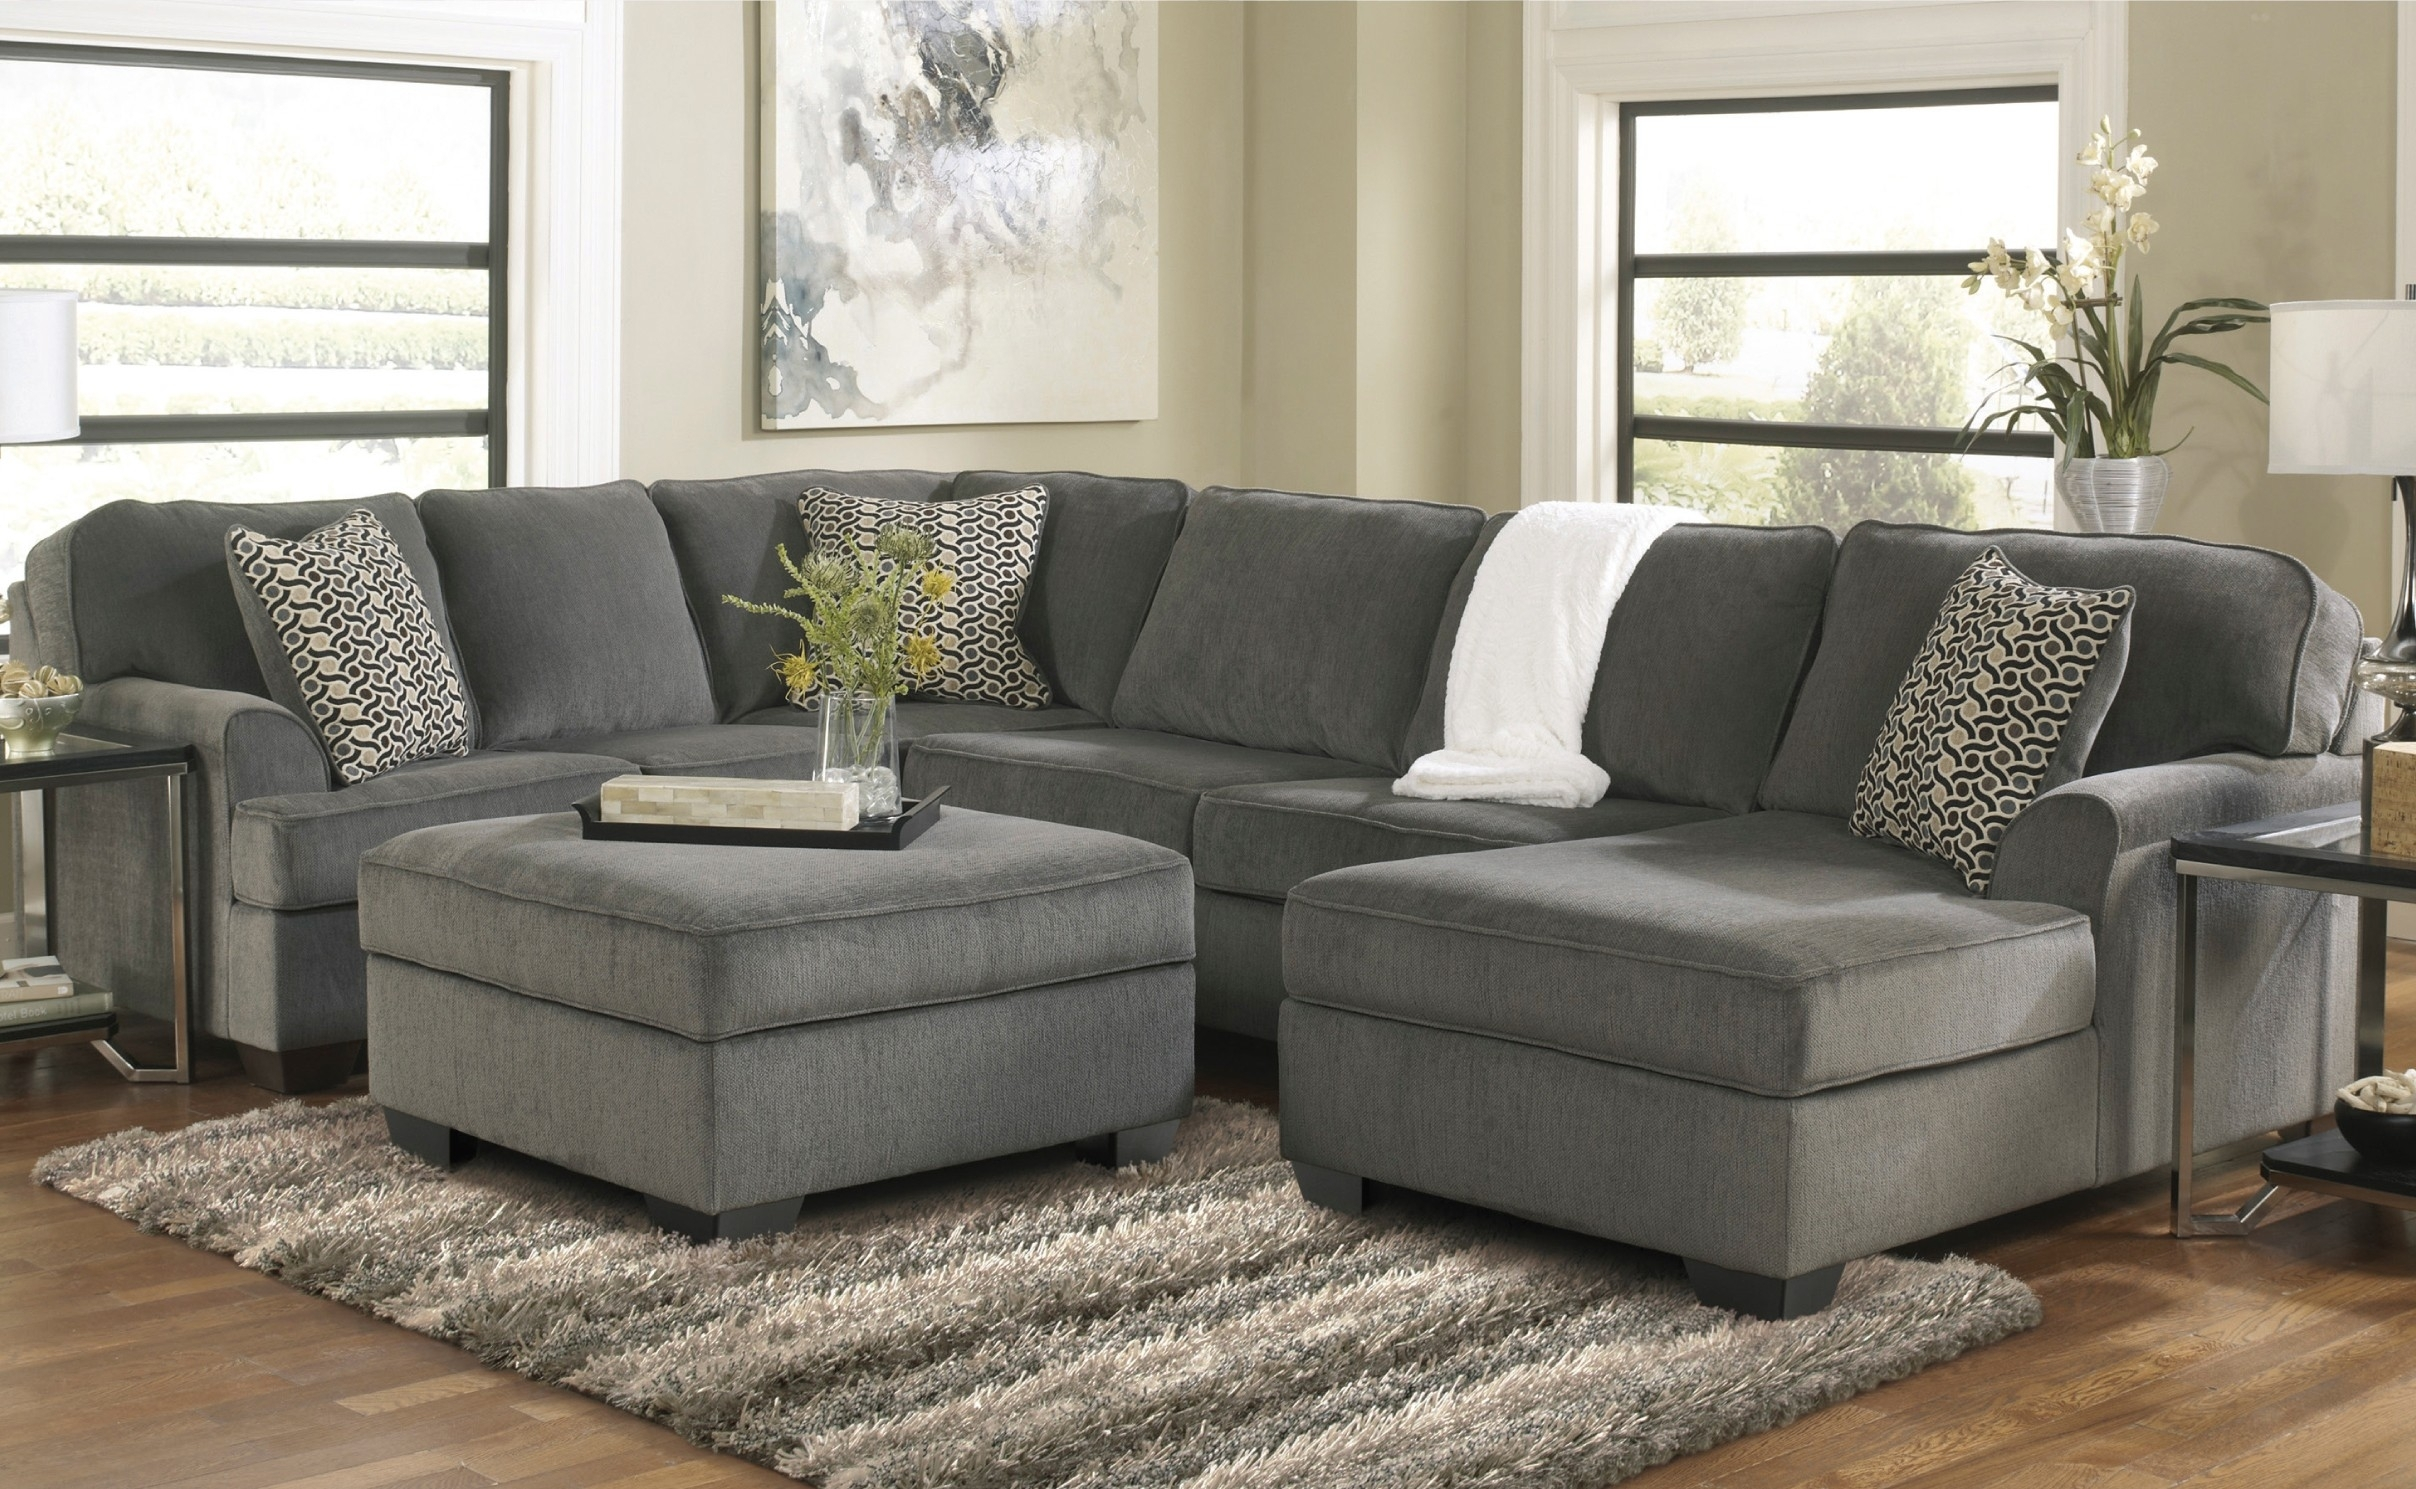 Elegant Sectional Sofa Clearance - Buildsimplehome for Clearance Sectional Sofas (Image 5 of 15)